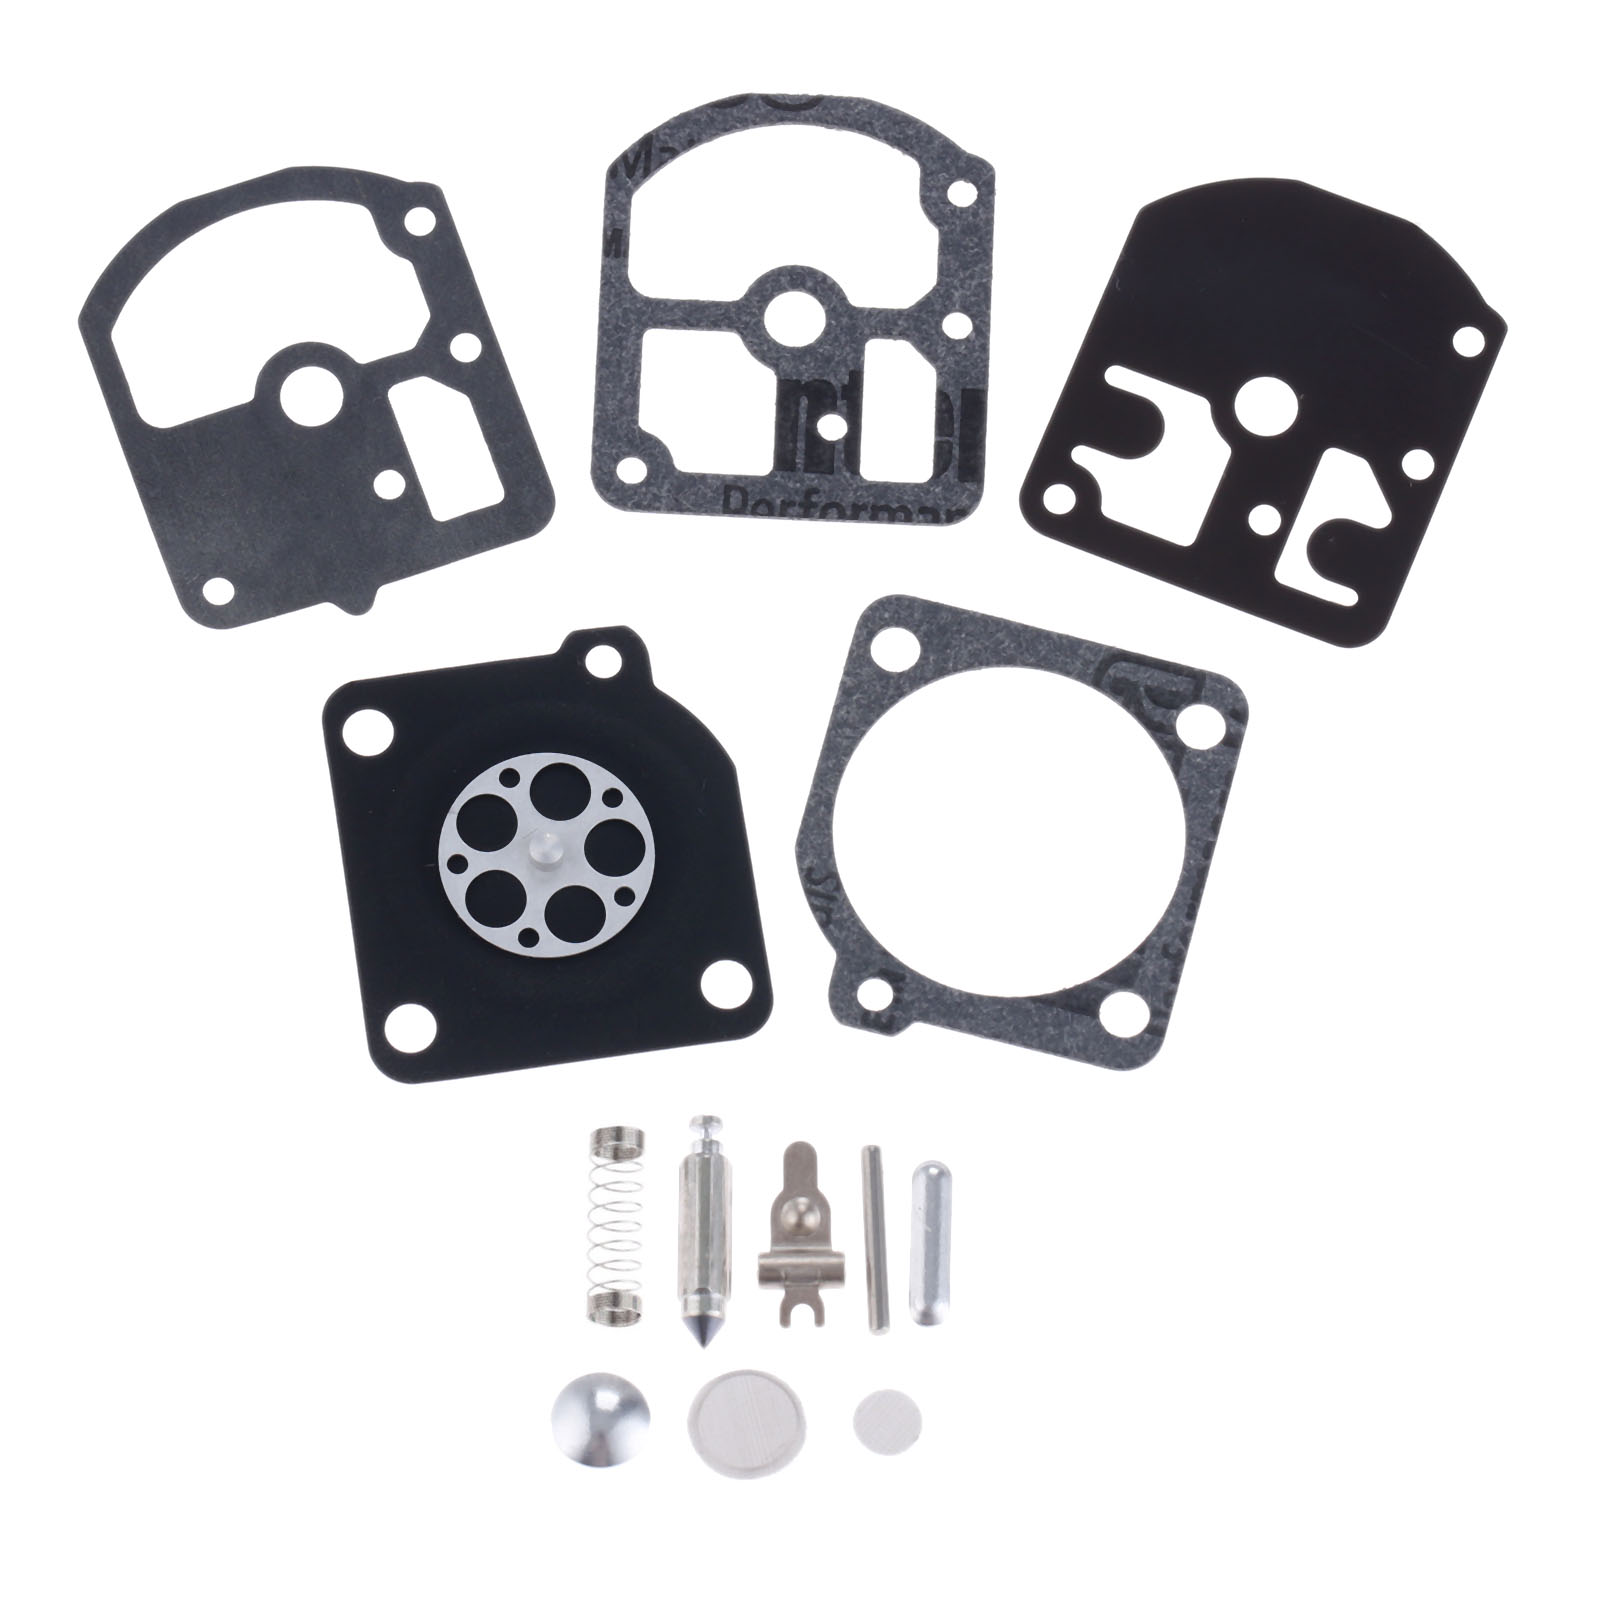 DRELD Carburetor Repair Kit fit for Echo CS280E CS280EP Chainsaw Zama C1S K1D Carbs HOMELITE 240 STIHL 09 010 TRIMMER CHAINSAWS in Grass Trimmer from Tools